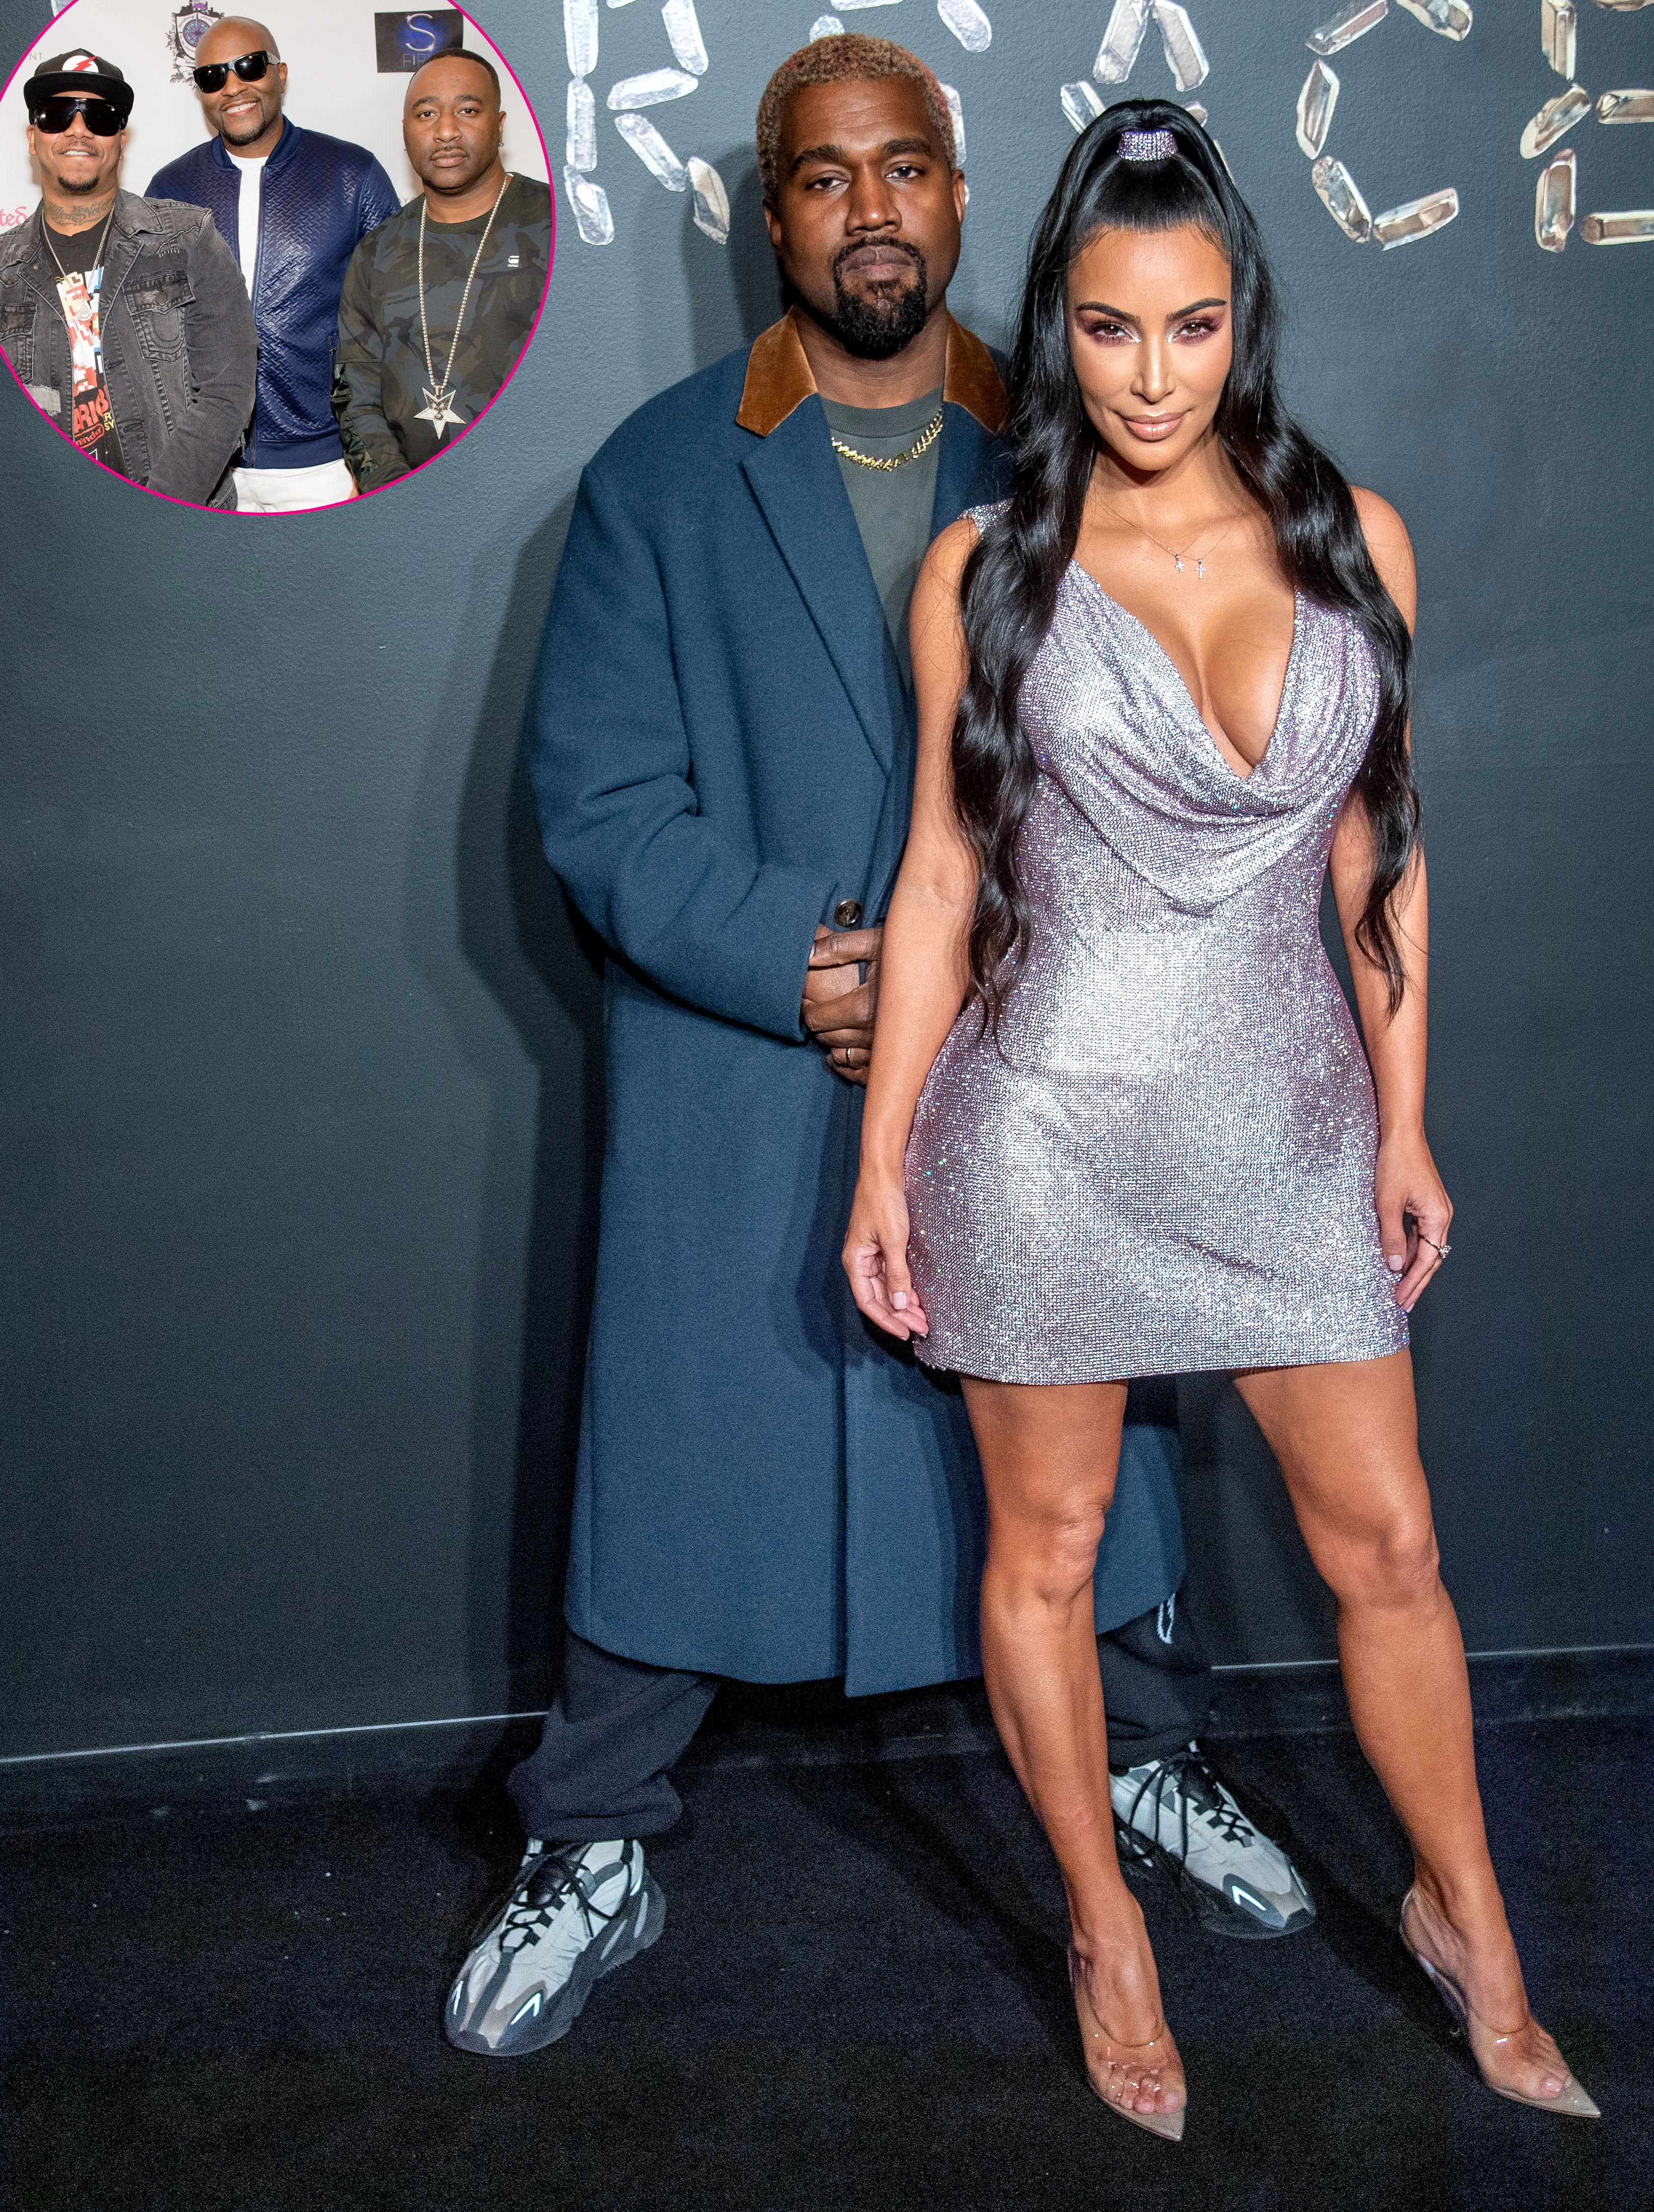 Kanye Surprises Kim With 112 Serenade - Kanye West and Kim Kardashian West attend the Versace fall 2019 fashion show at the American Stock Exchange Building on December 02, 2018 in New York City.